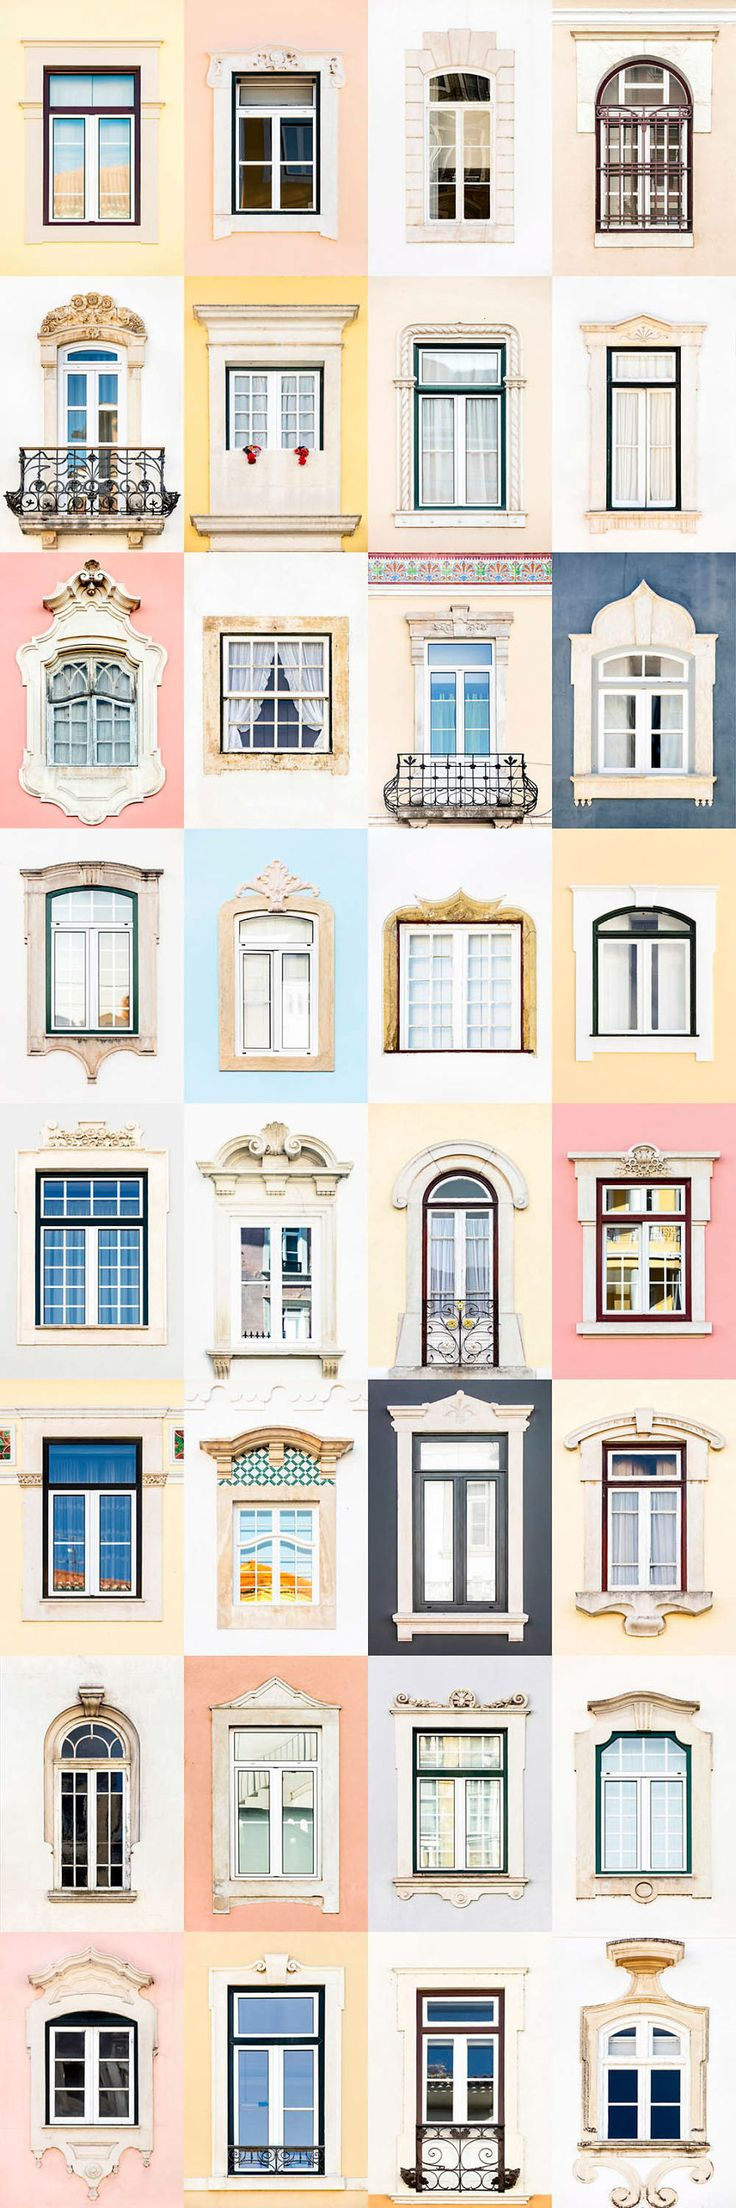 I Traveled All Over #Portugal To Photograph Windows, And Captured More Than 3200 Of Them - via BoredPanda 23-10-2017 | If you are planning a trip to Portugal, you can see which are the most beautiful cities to visit or what kind of architecture you like the most. Photo: Coimbra